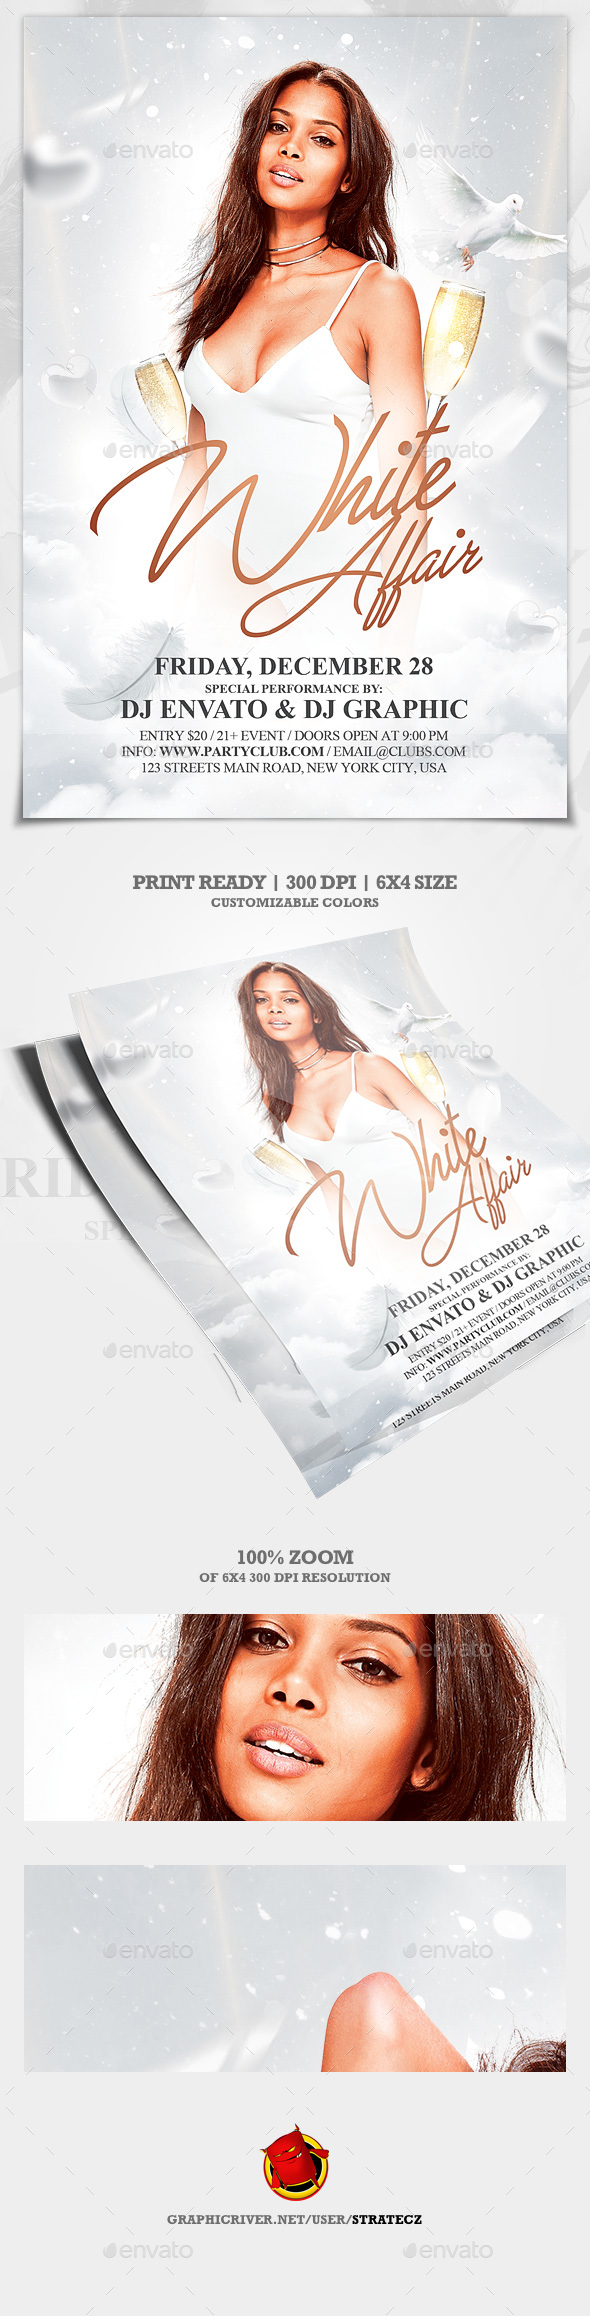 White Party Flyer - Events Flyers